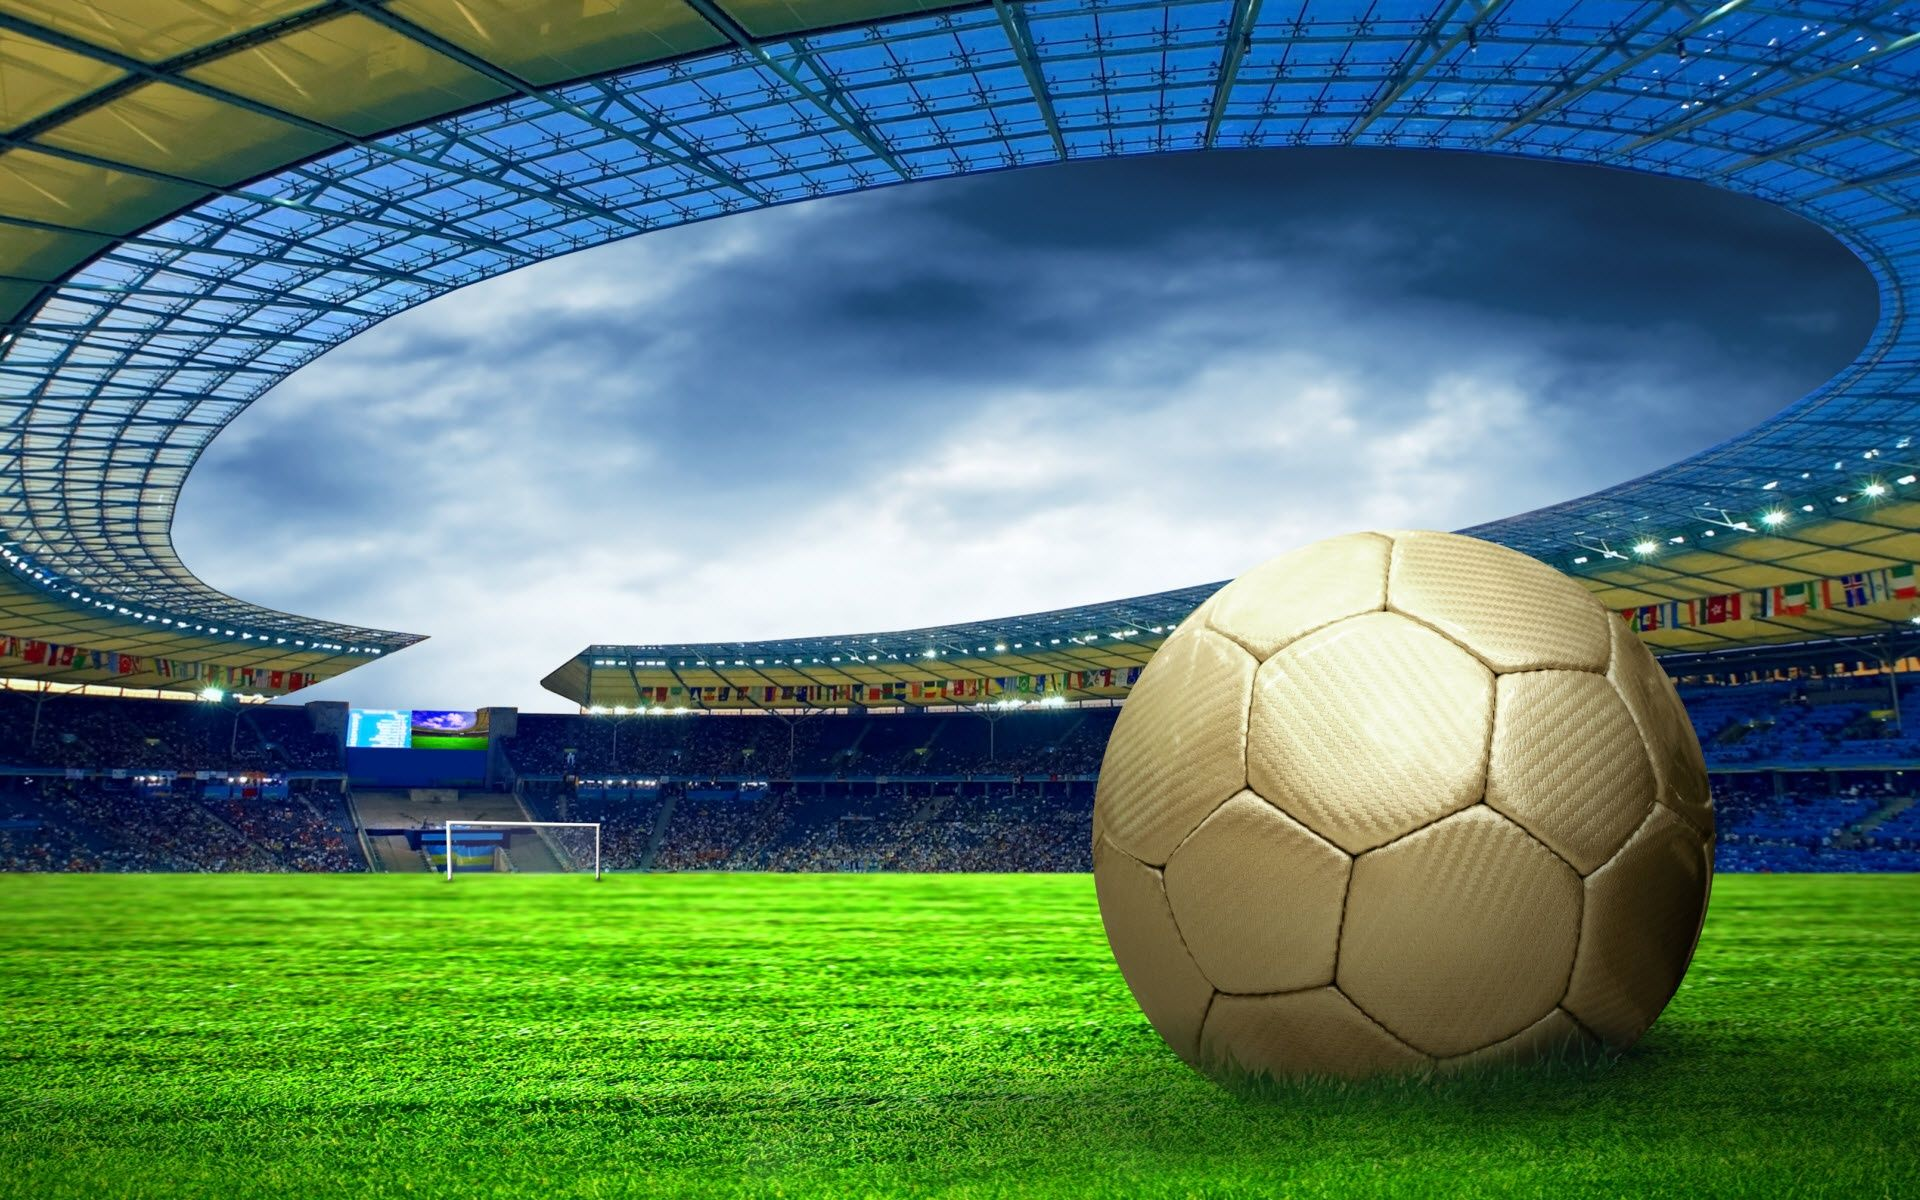 Football Stadium Hd Desktop Wallpaper Wallpapersme Soccer Ball Soccer Stadium Football Stadiums